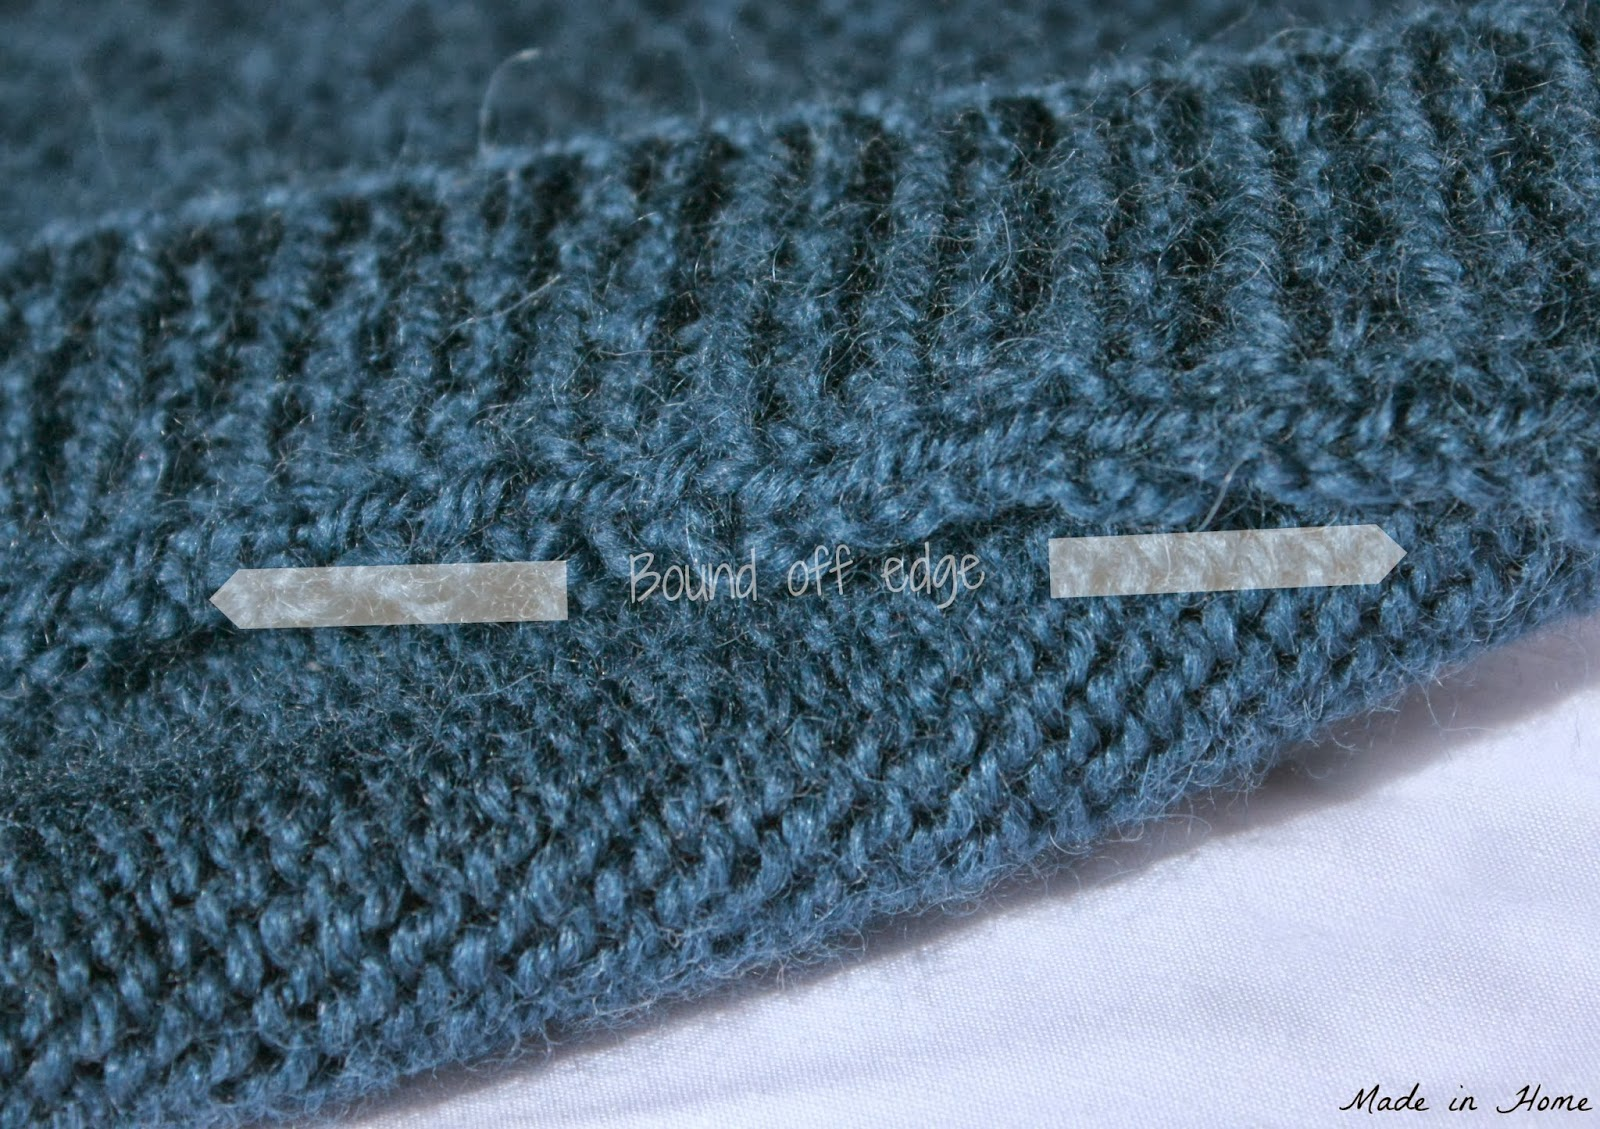 Knitting Pick Up Stitches On An Edge : Made in Home: The not-so-effortless cardigan Picking up stitches tutorial {...